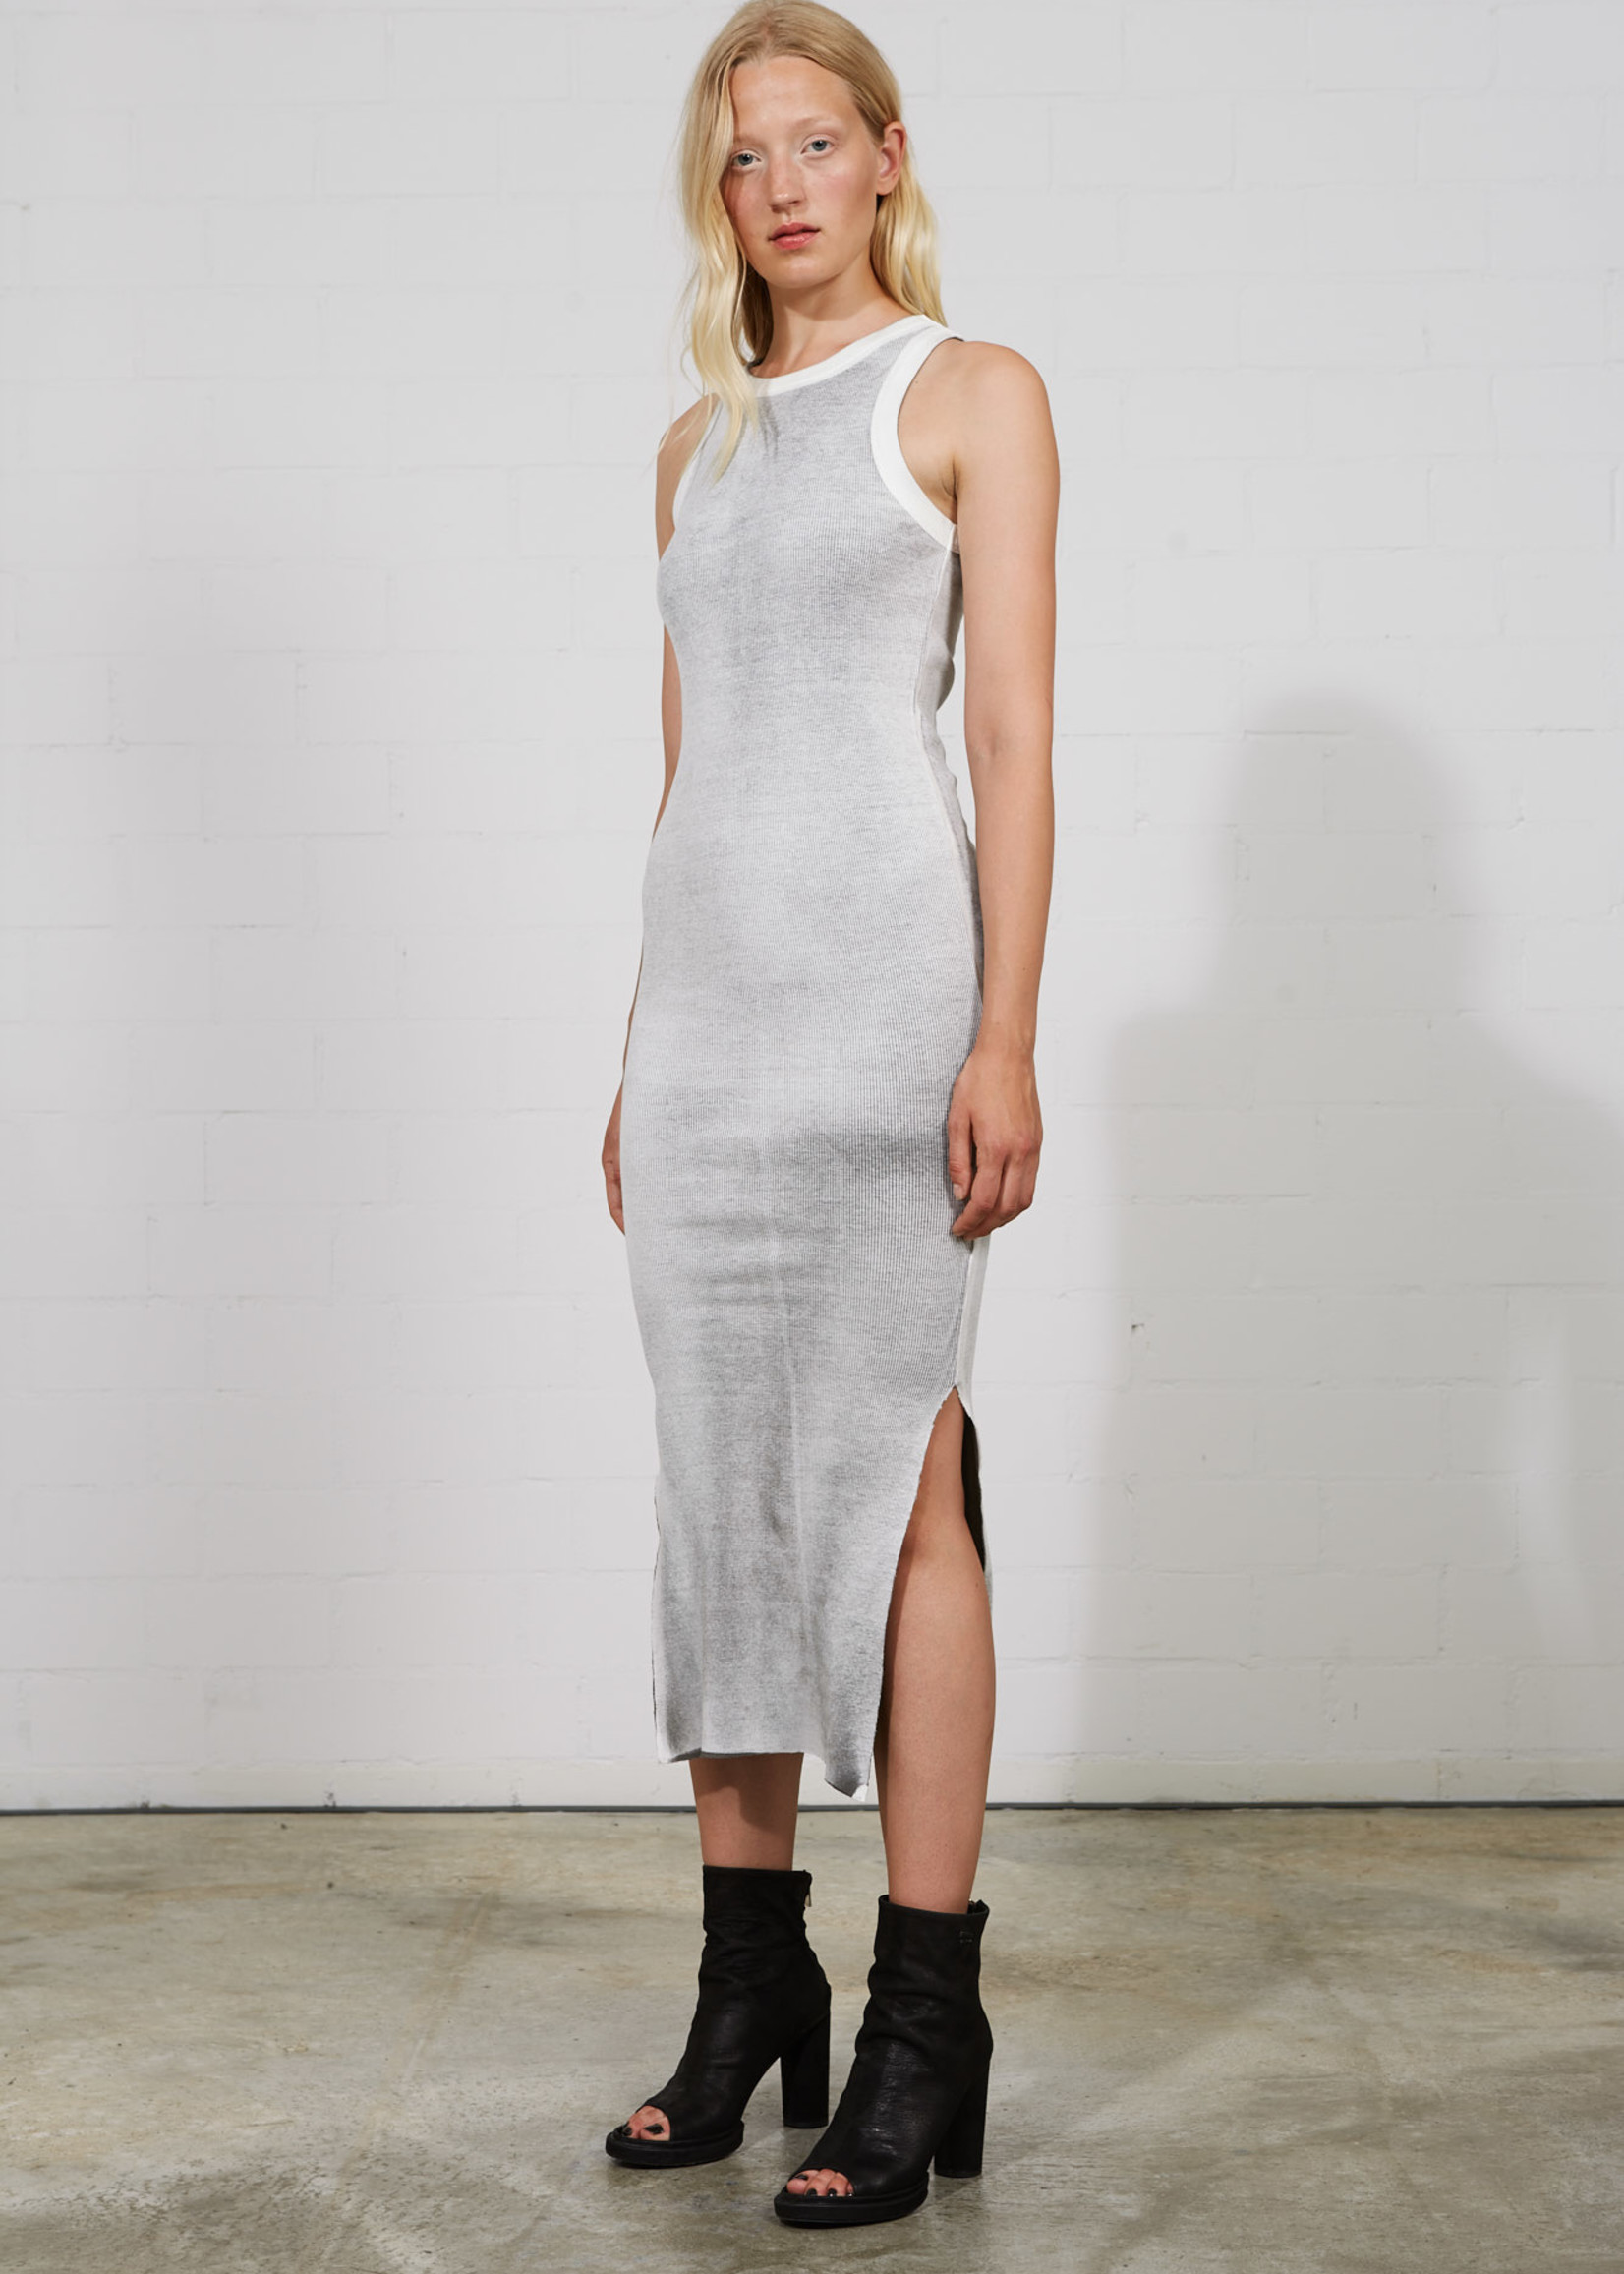 Thom krom Thom Krom dress white